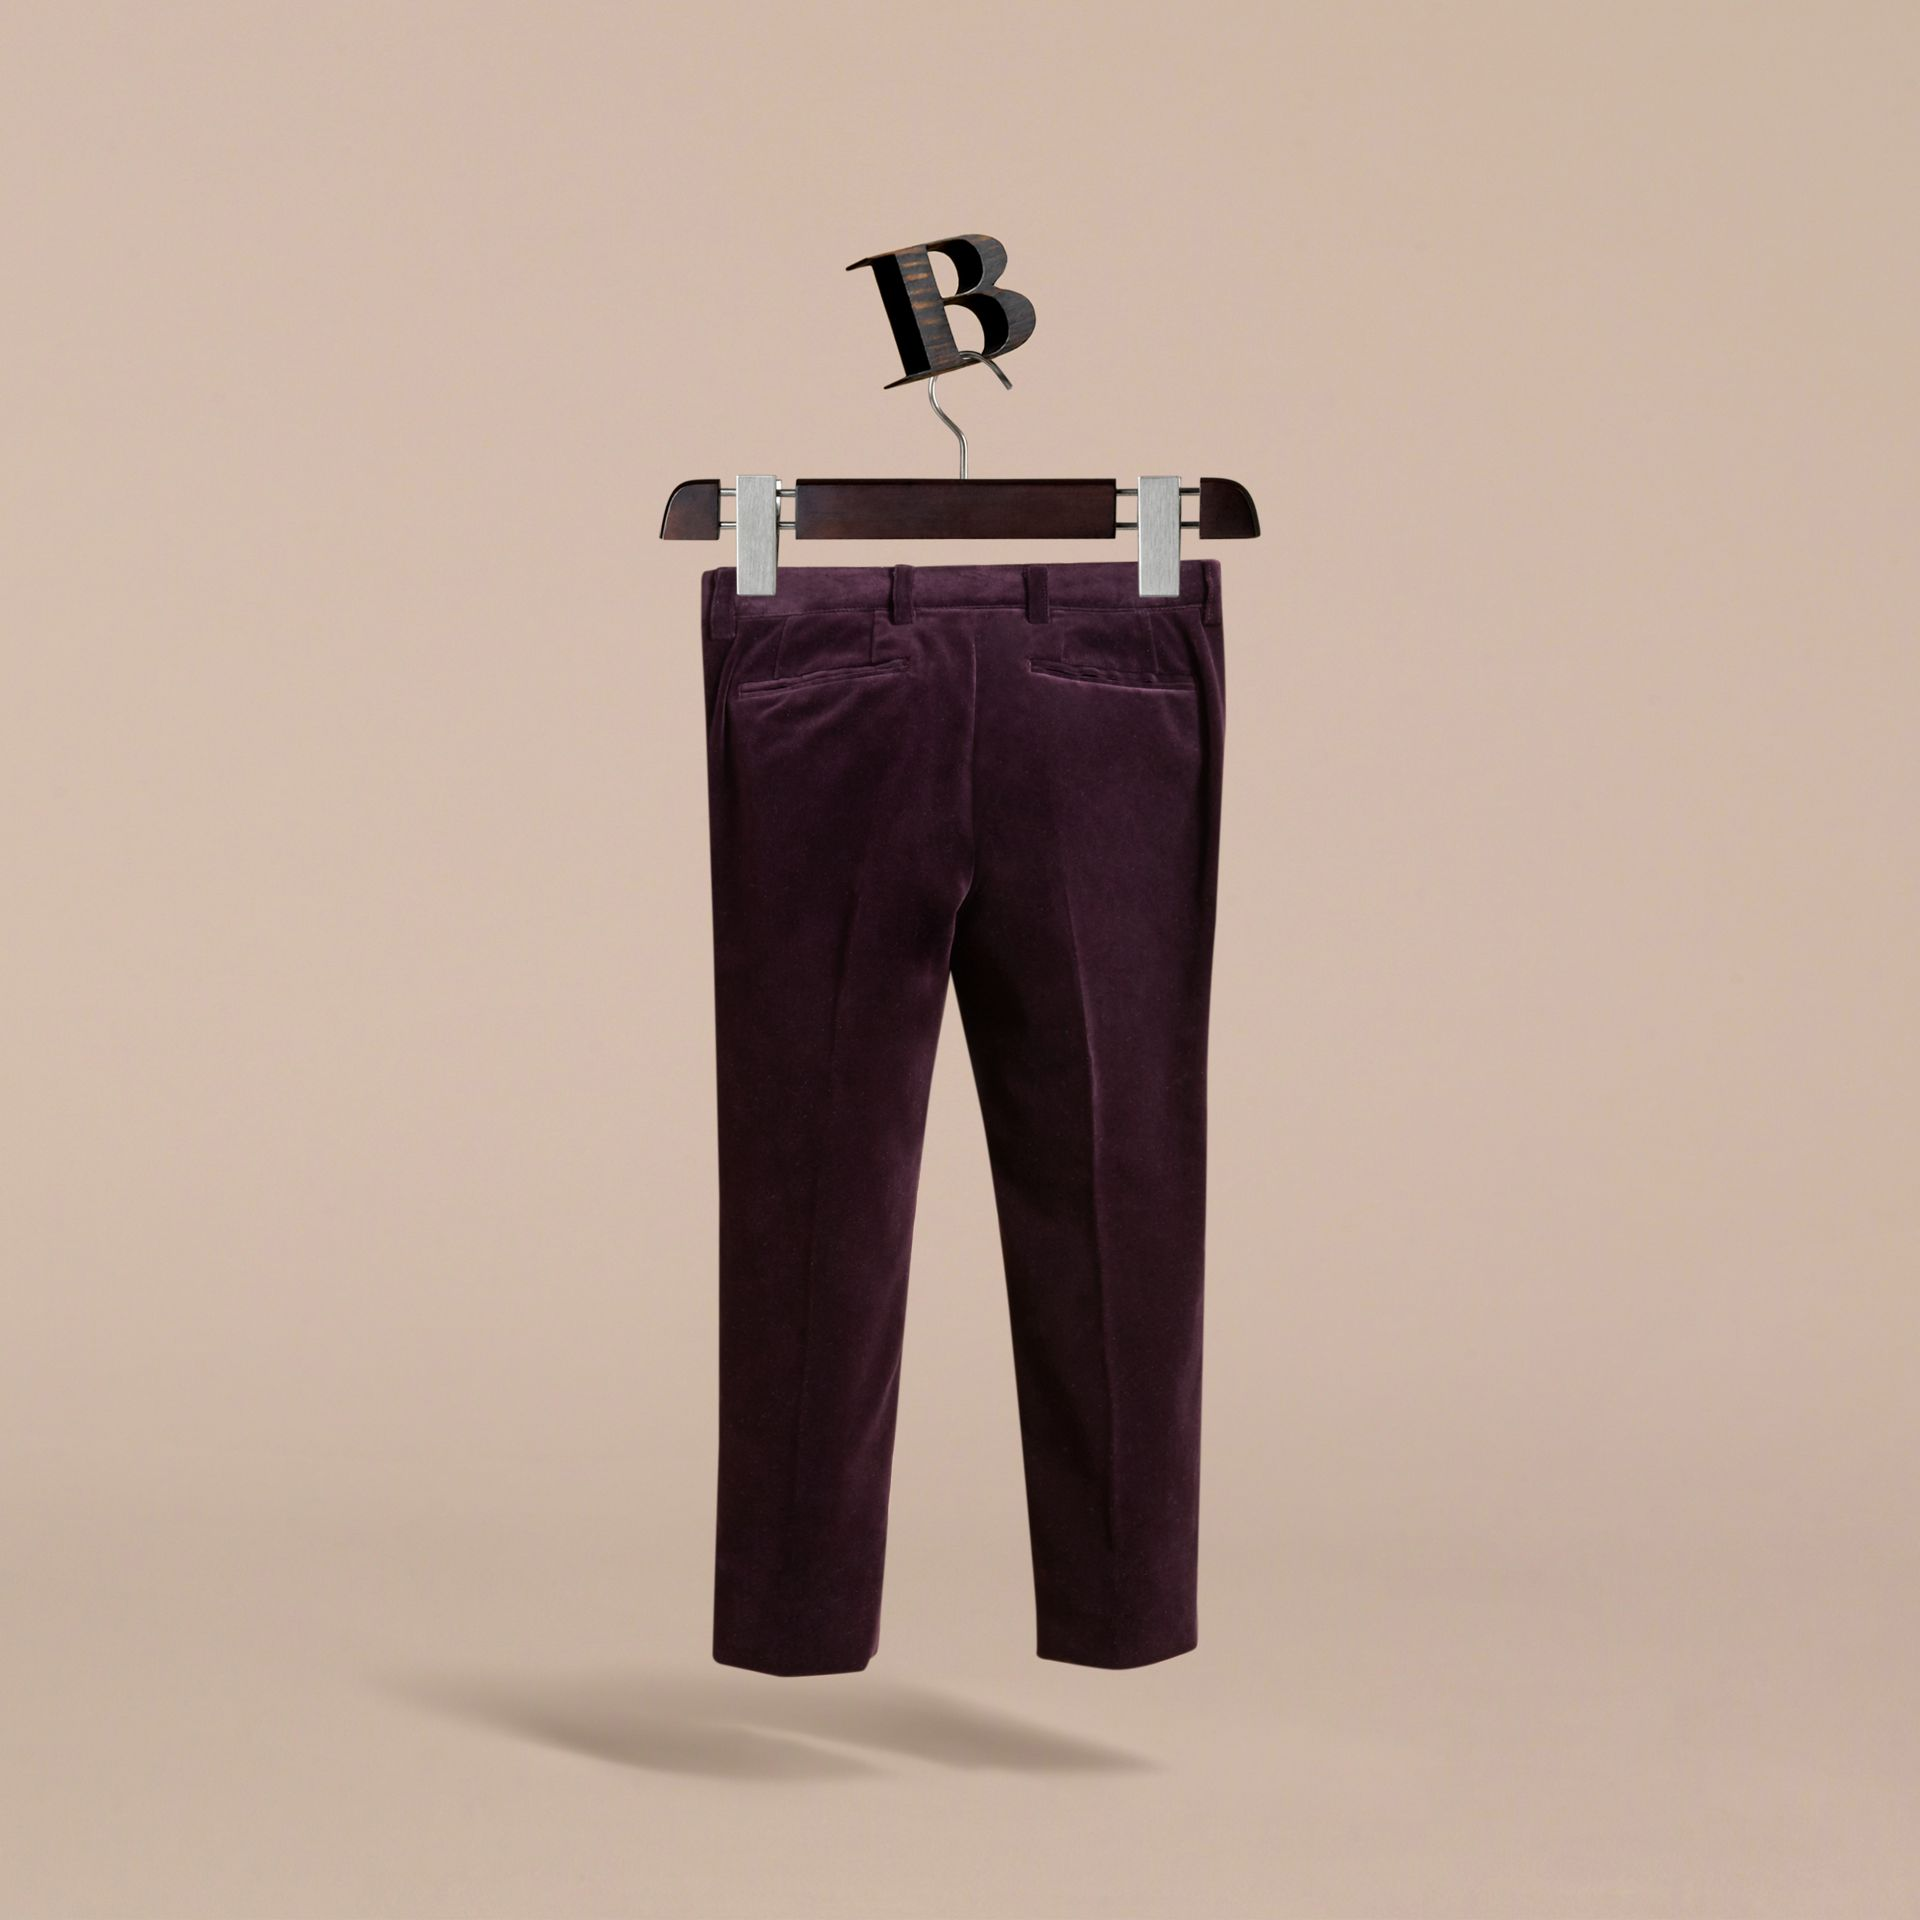 Velvet Tuxedo Trousers in Black Currant - Boy | Burberry - gallery image 3